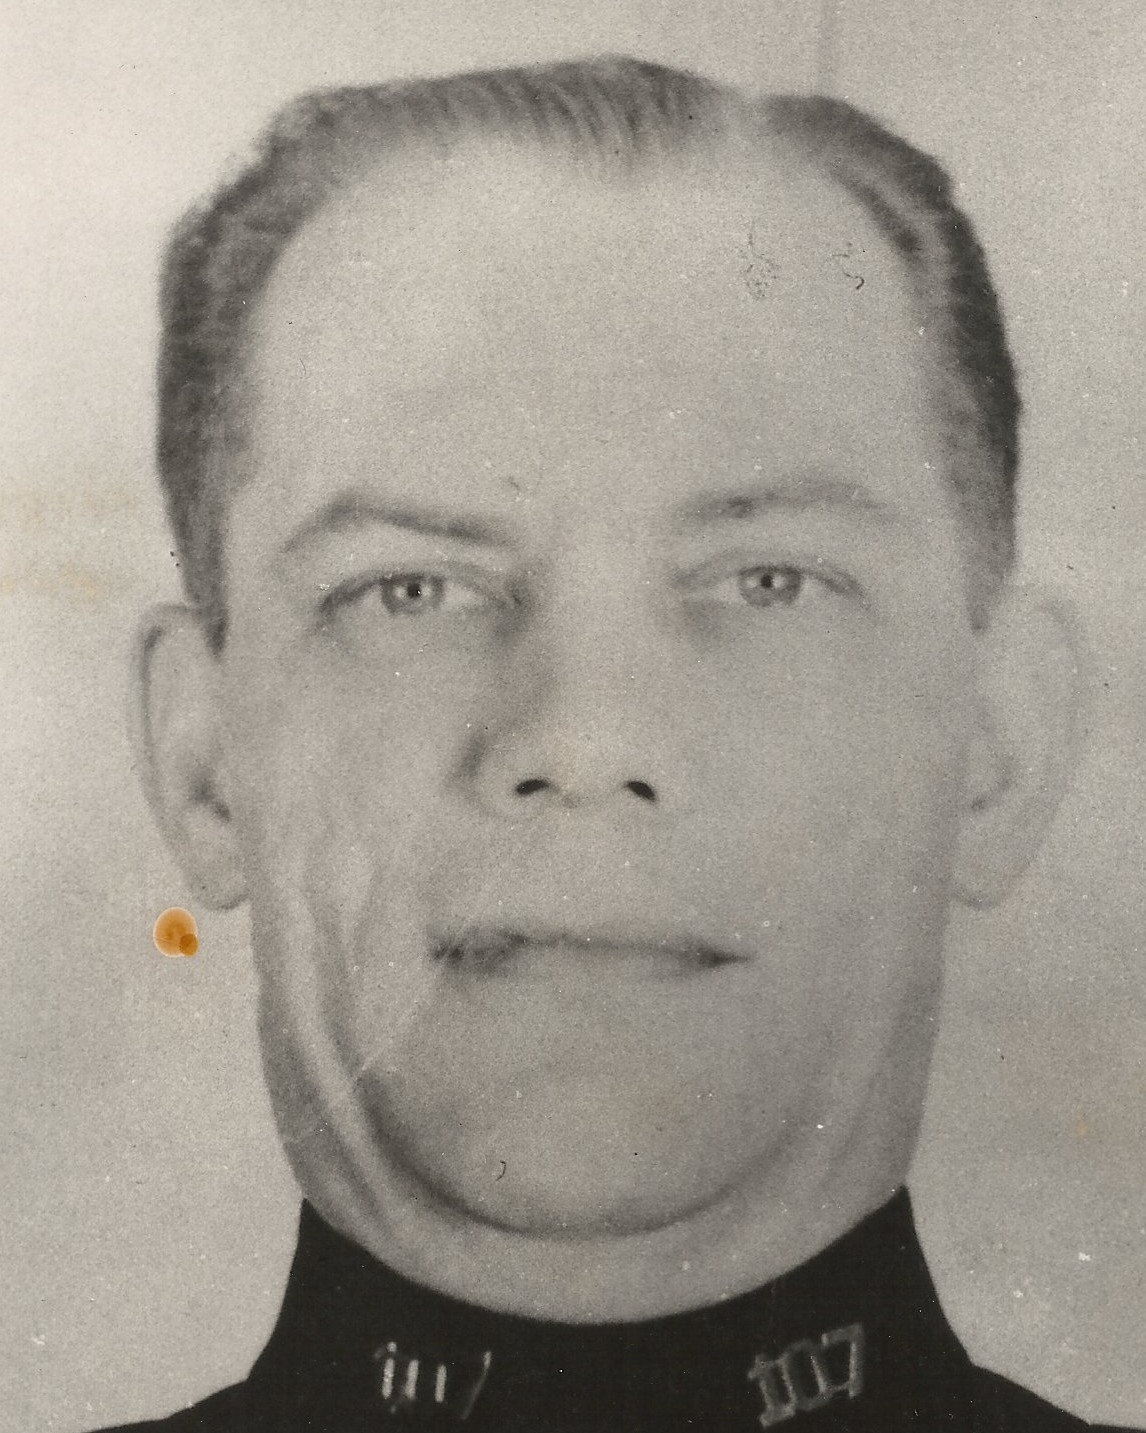 Sergeant Donald Wiseman | New York City Police Department, New York